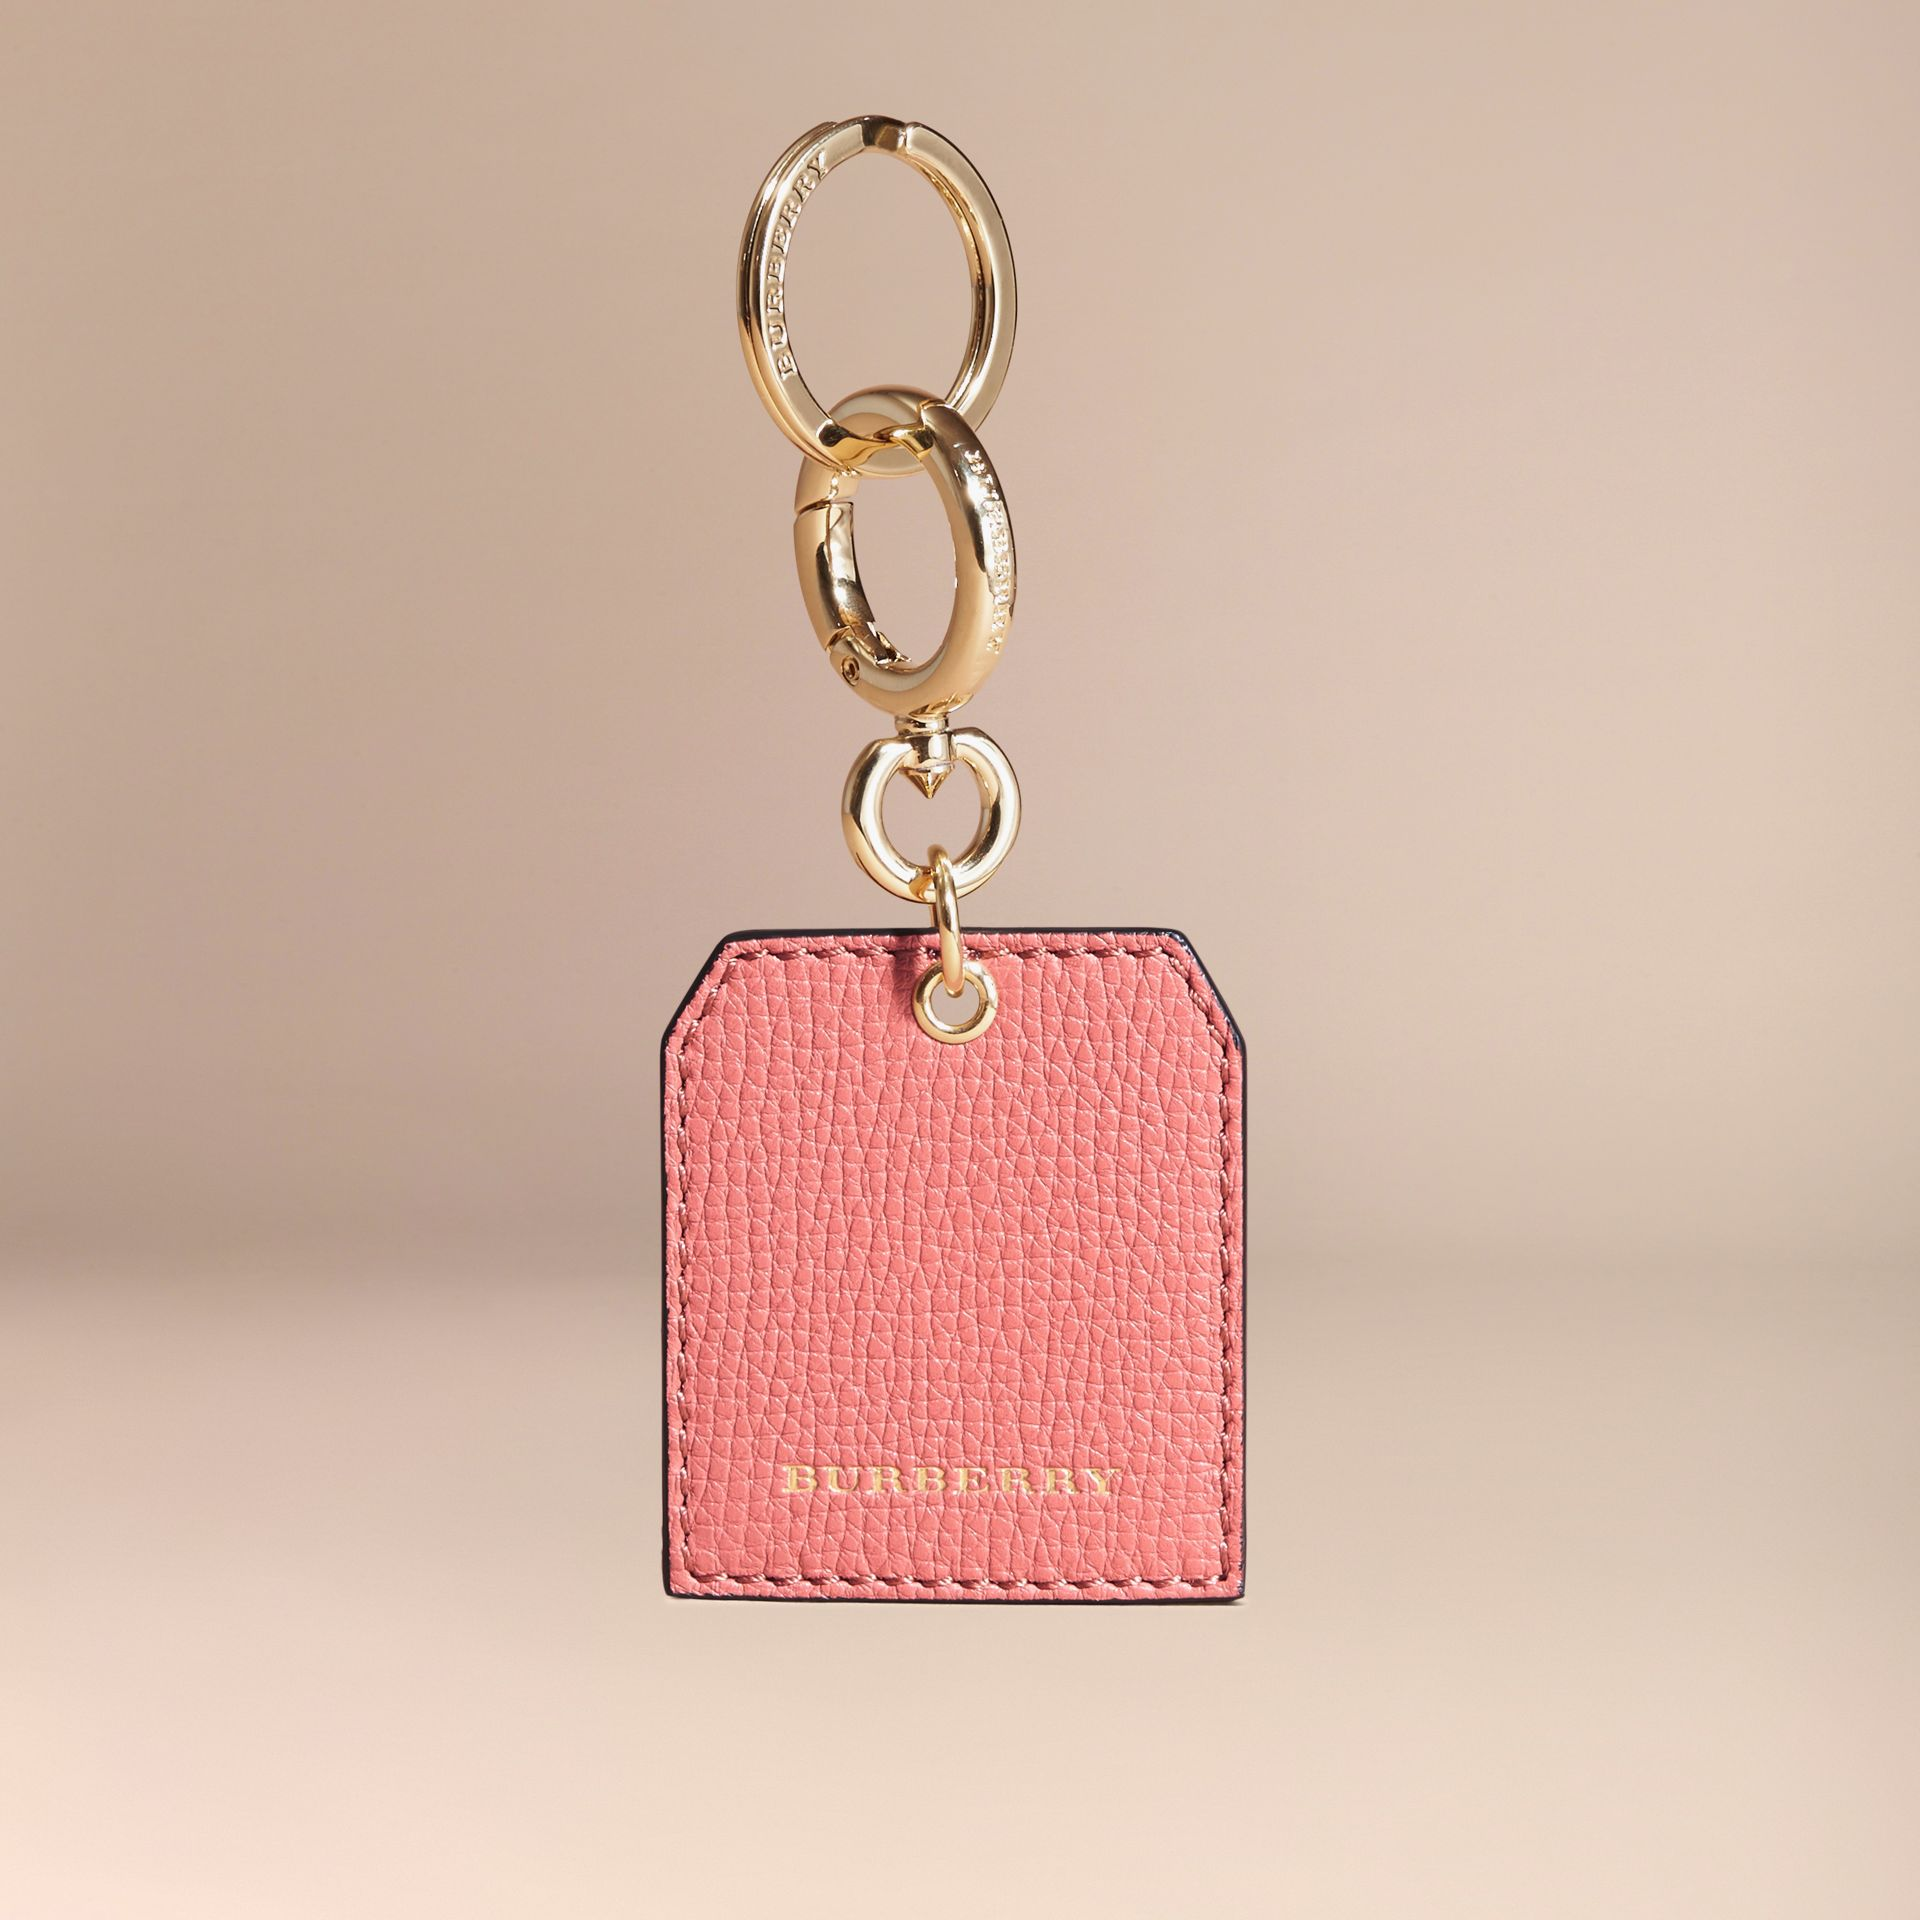 Grainy Leather Key Charm in Copper Pink - Women | Burberry - gallery image 5